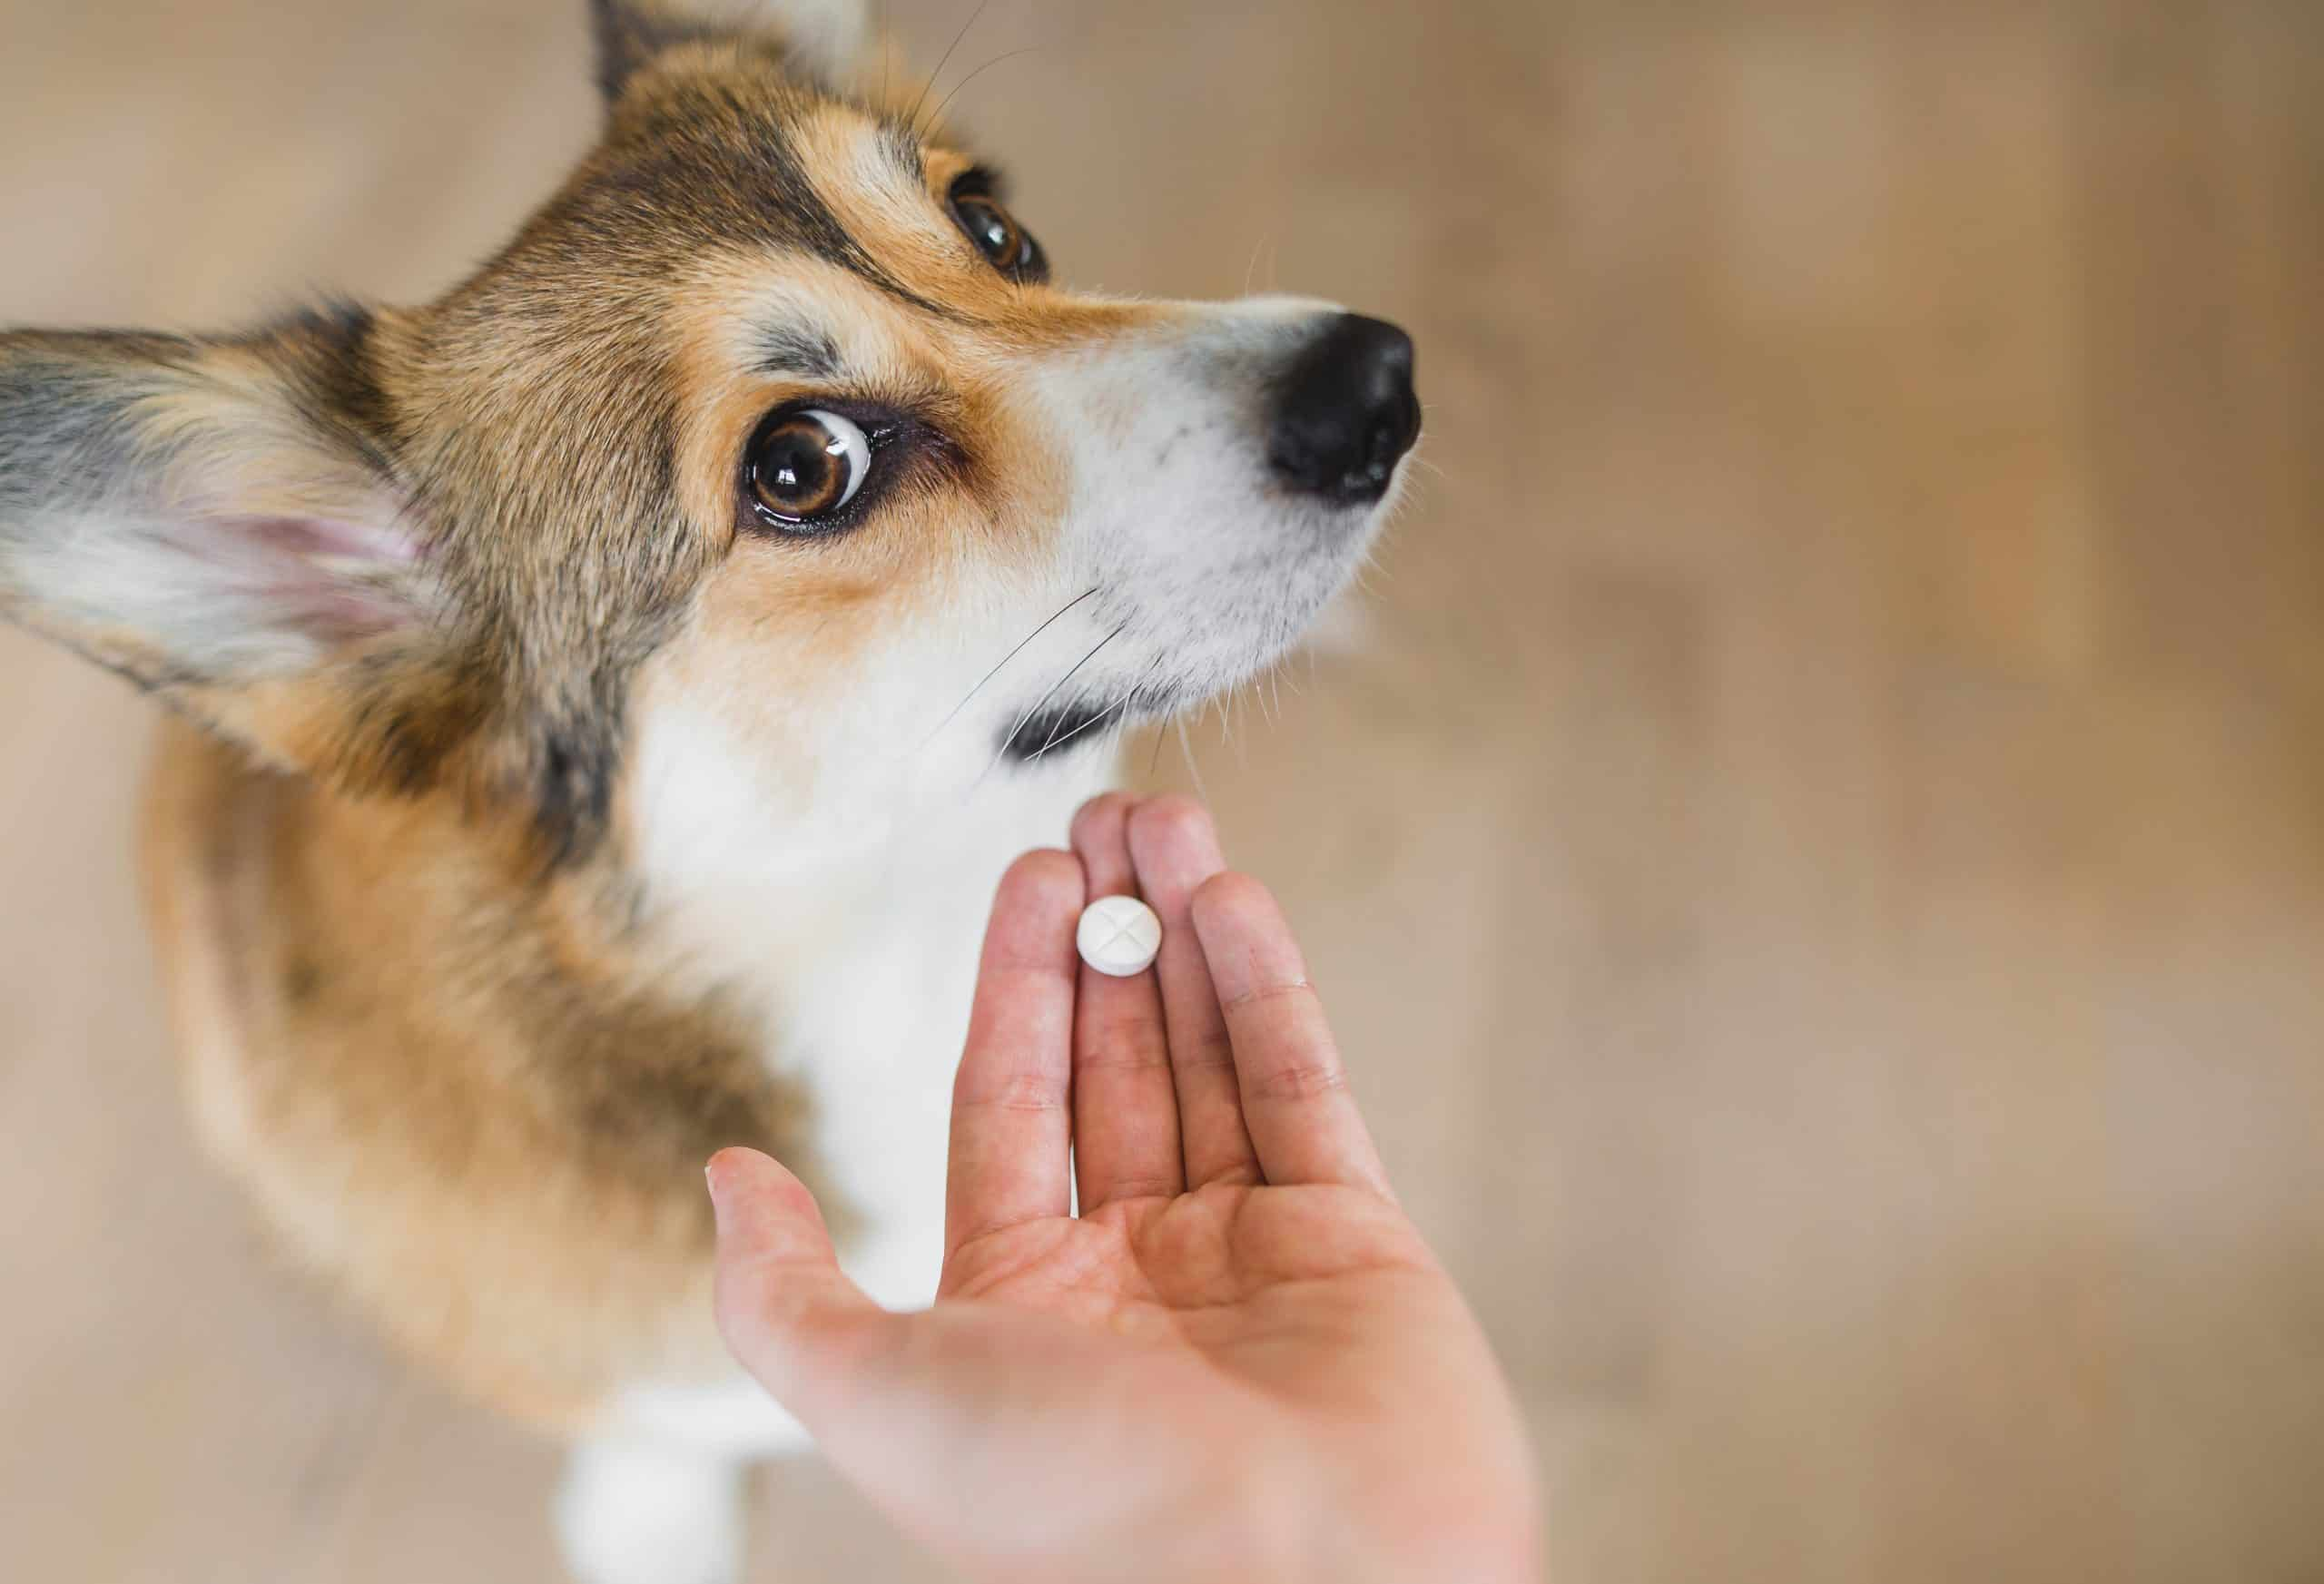 Welsh corgi pembroke sick dog receiving a medifaction in a pill, lookng to the camera. hand with a pill and a dog. owner giving a pill to a dog.